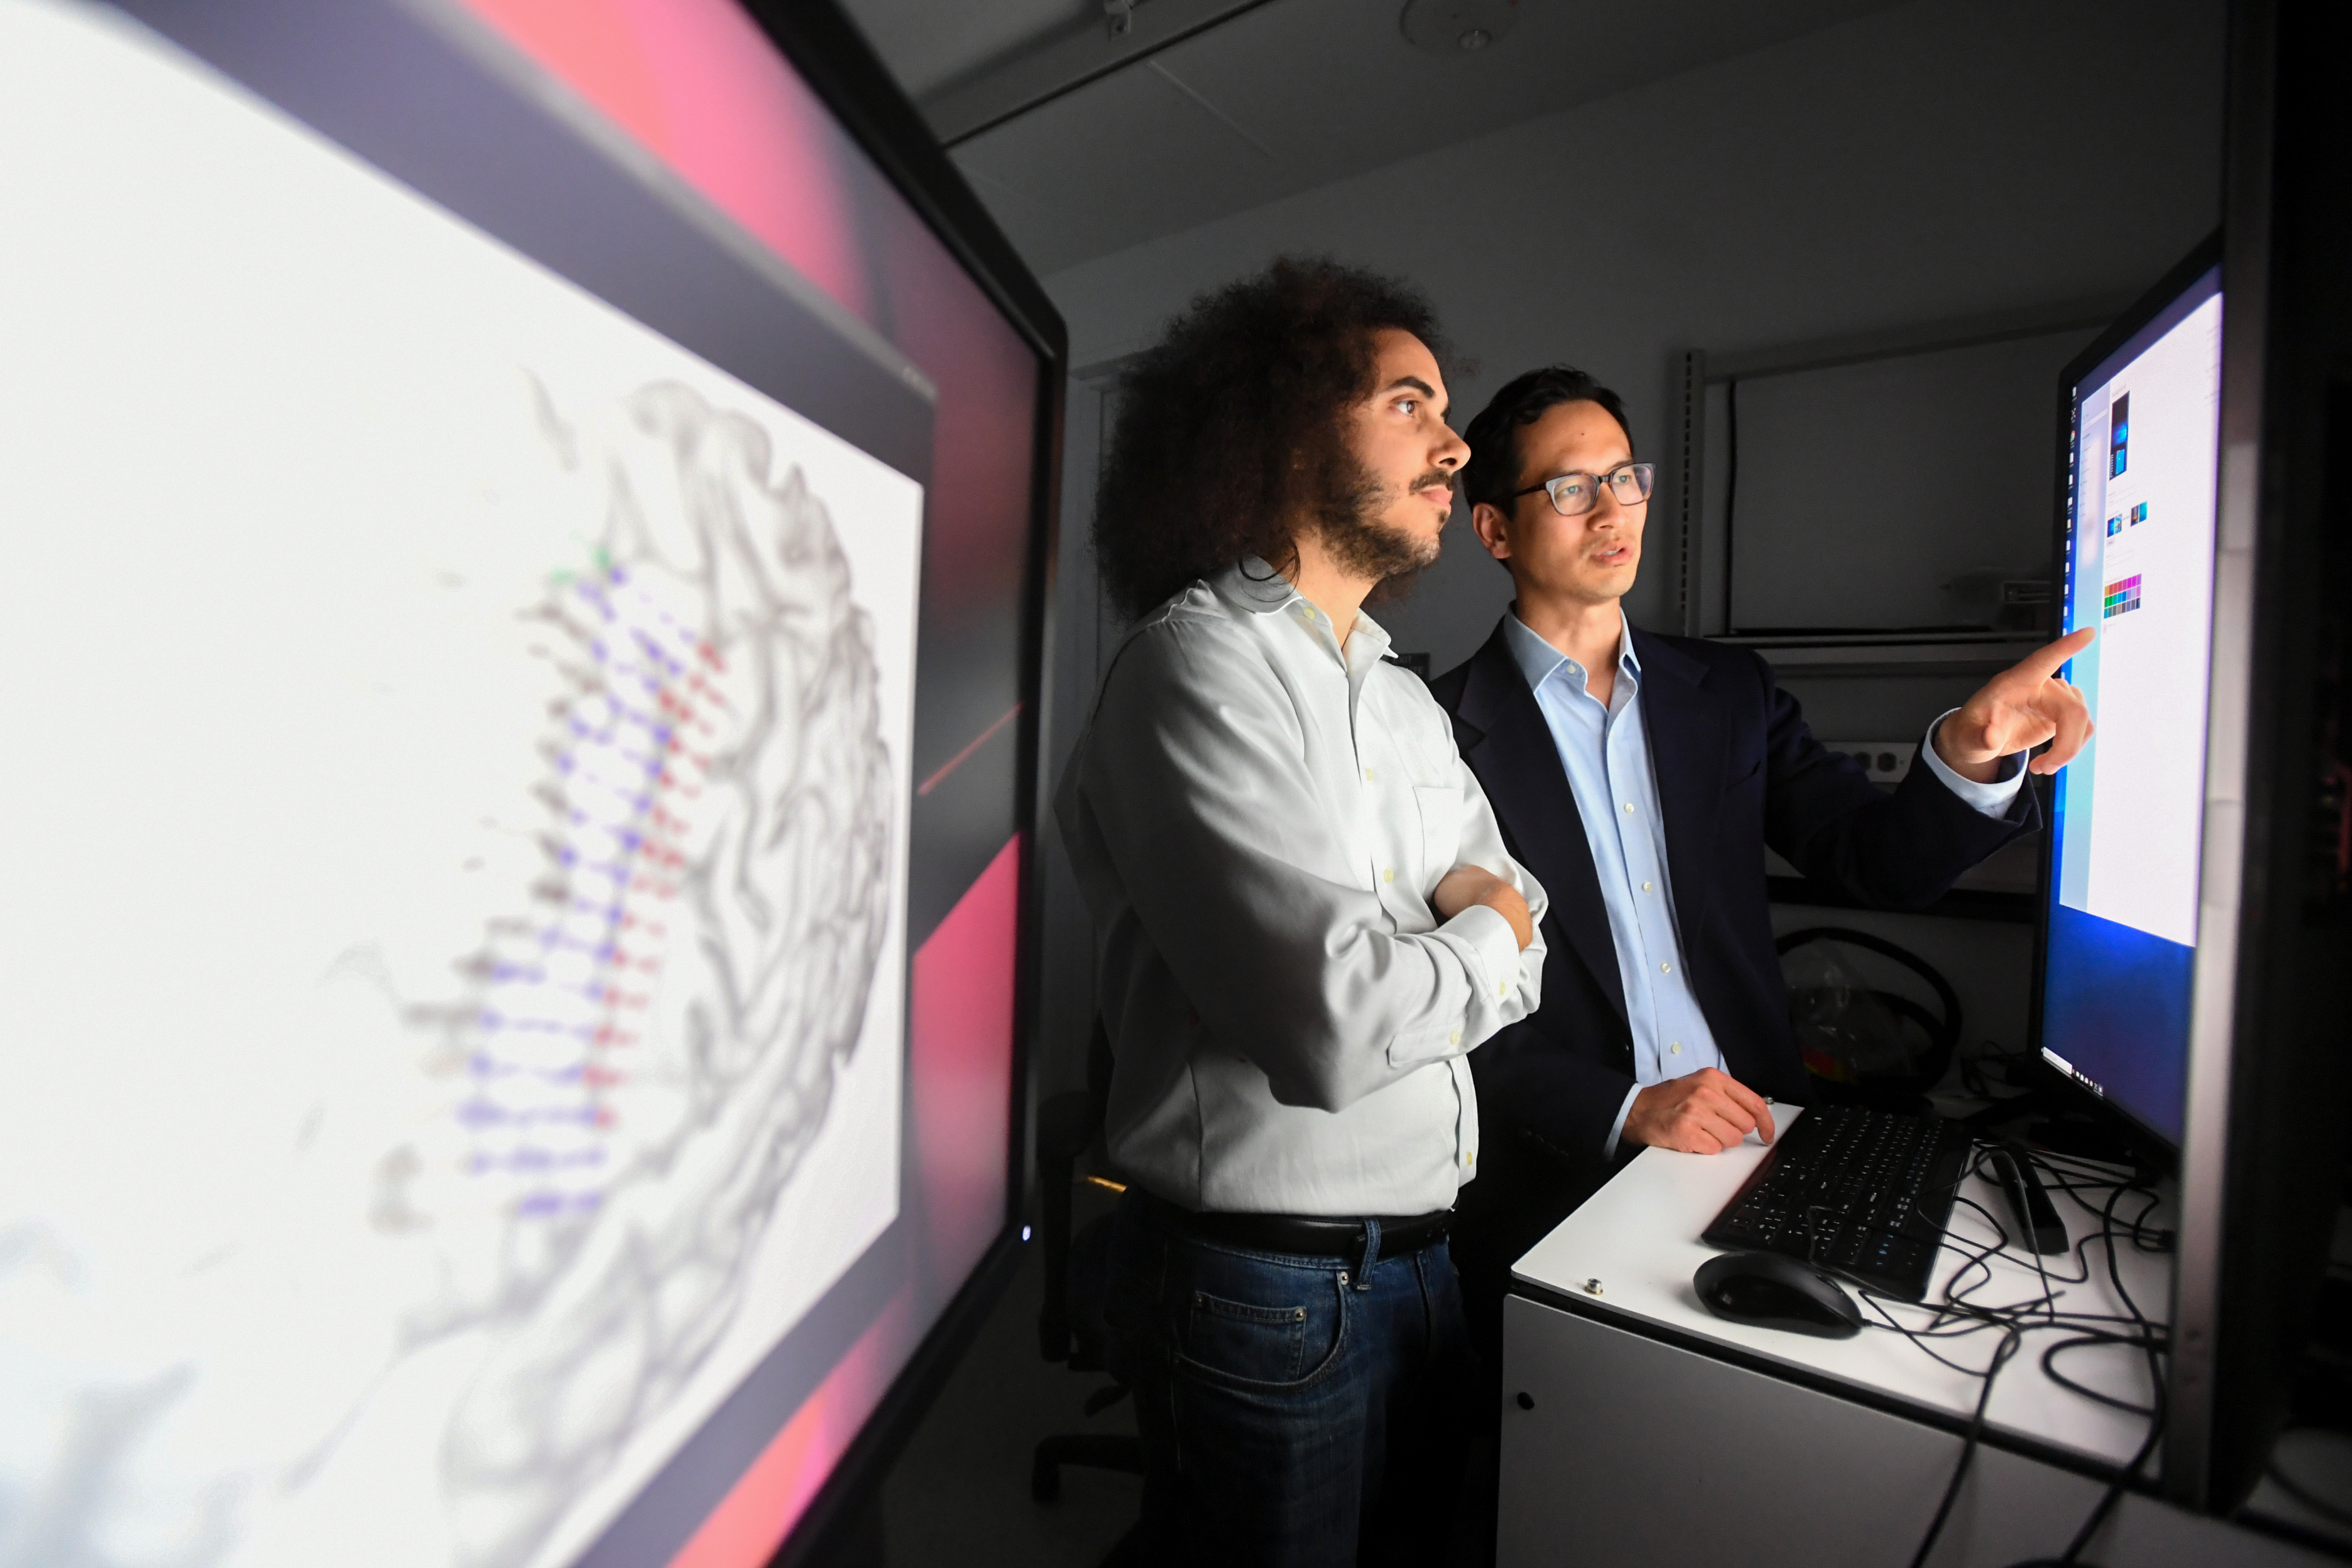 Researchers work in Dr. Eddie Chang's lab at UCSF's Mission Bay campus on Friday, June 7, 2019, in San Francisco. Pictured are postdoctoral scholar Pengfei Sun, PhD, research scientist Joseph Makin, PhD, and postdoctoral scholar David Moses, PhD. (Photo by Noah Berger)CONSENT FORMS OBTAINED